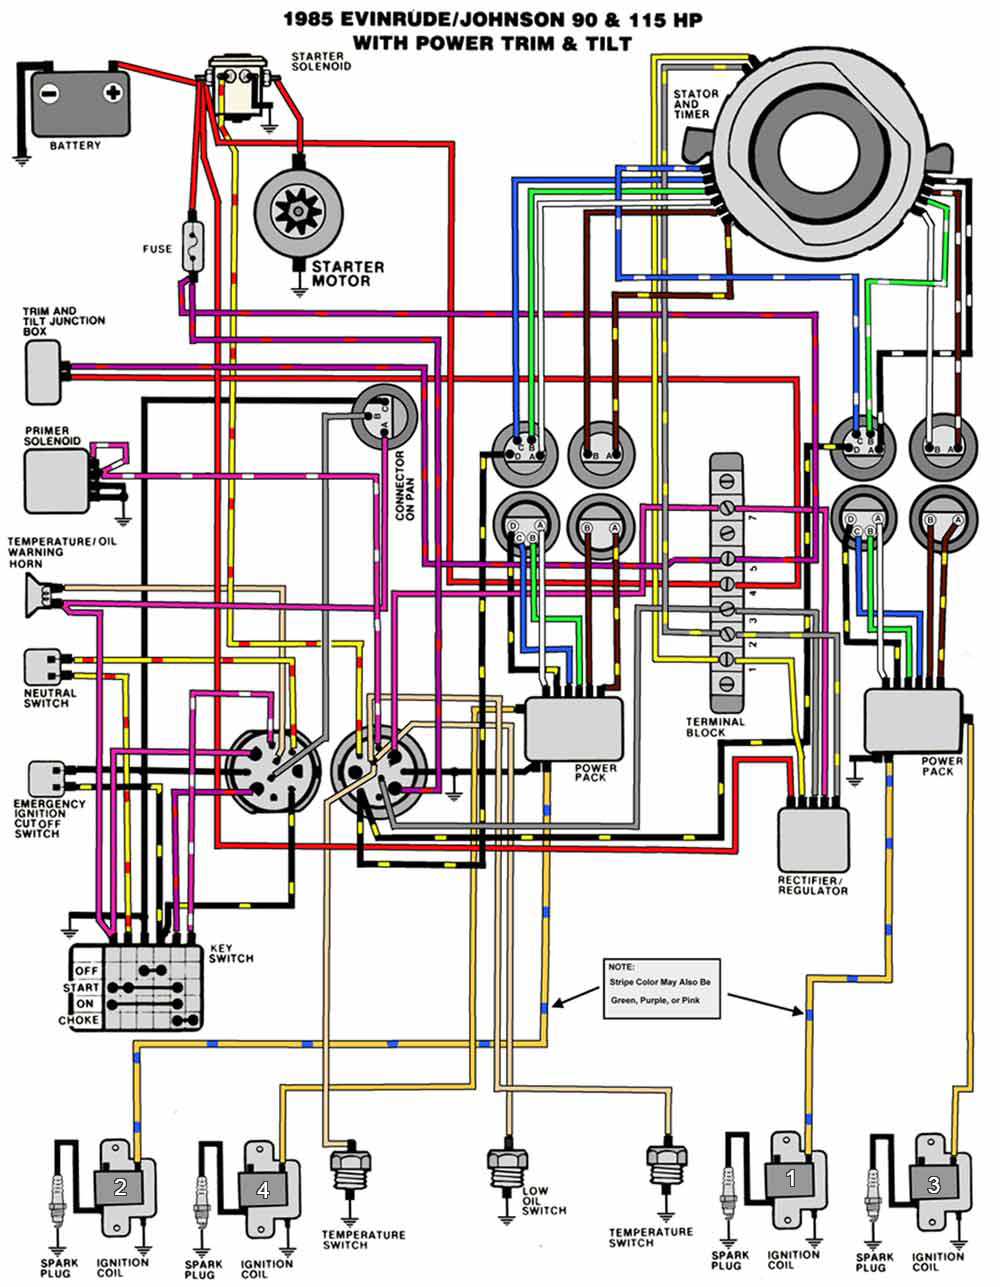 1985_90_115TnT wiring diagram for a 85 hp evinrude outboard wiring wiring  at mifinder.co